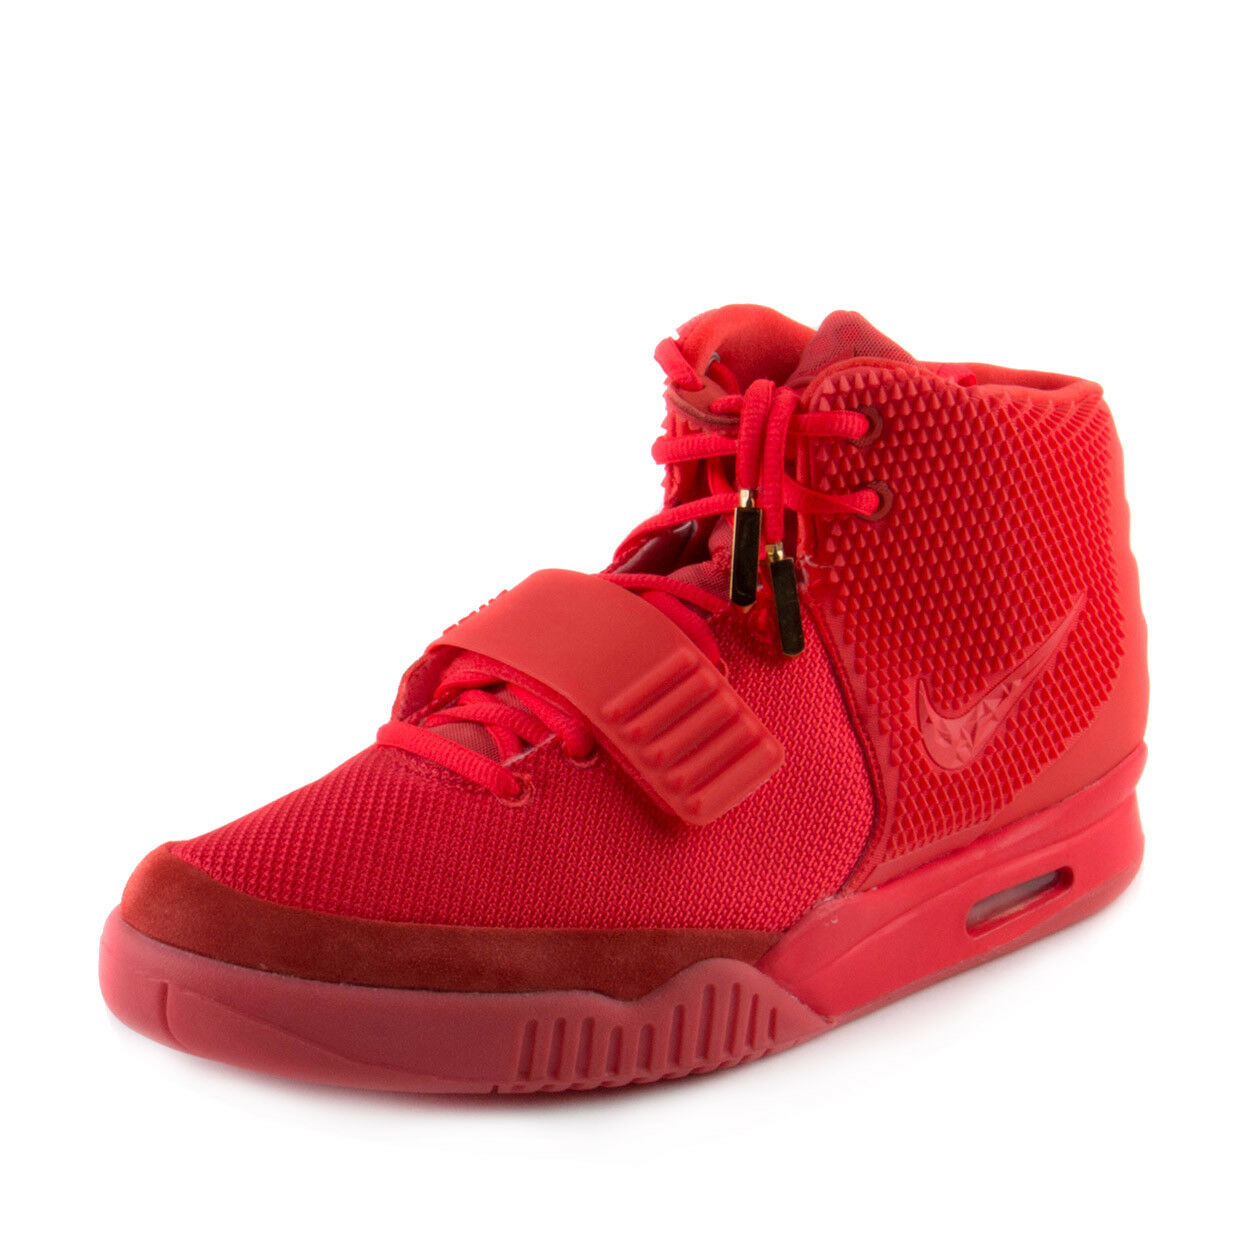 Nike Mens Air Yeezy 2 SP  Red October  Red 508214-660 Size 10.5